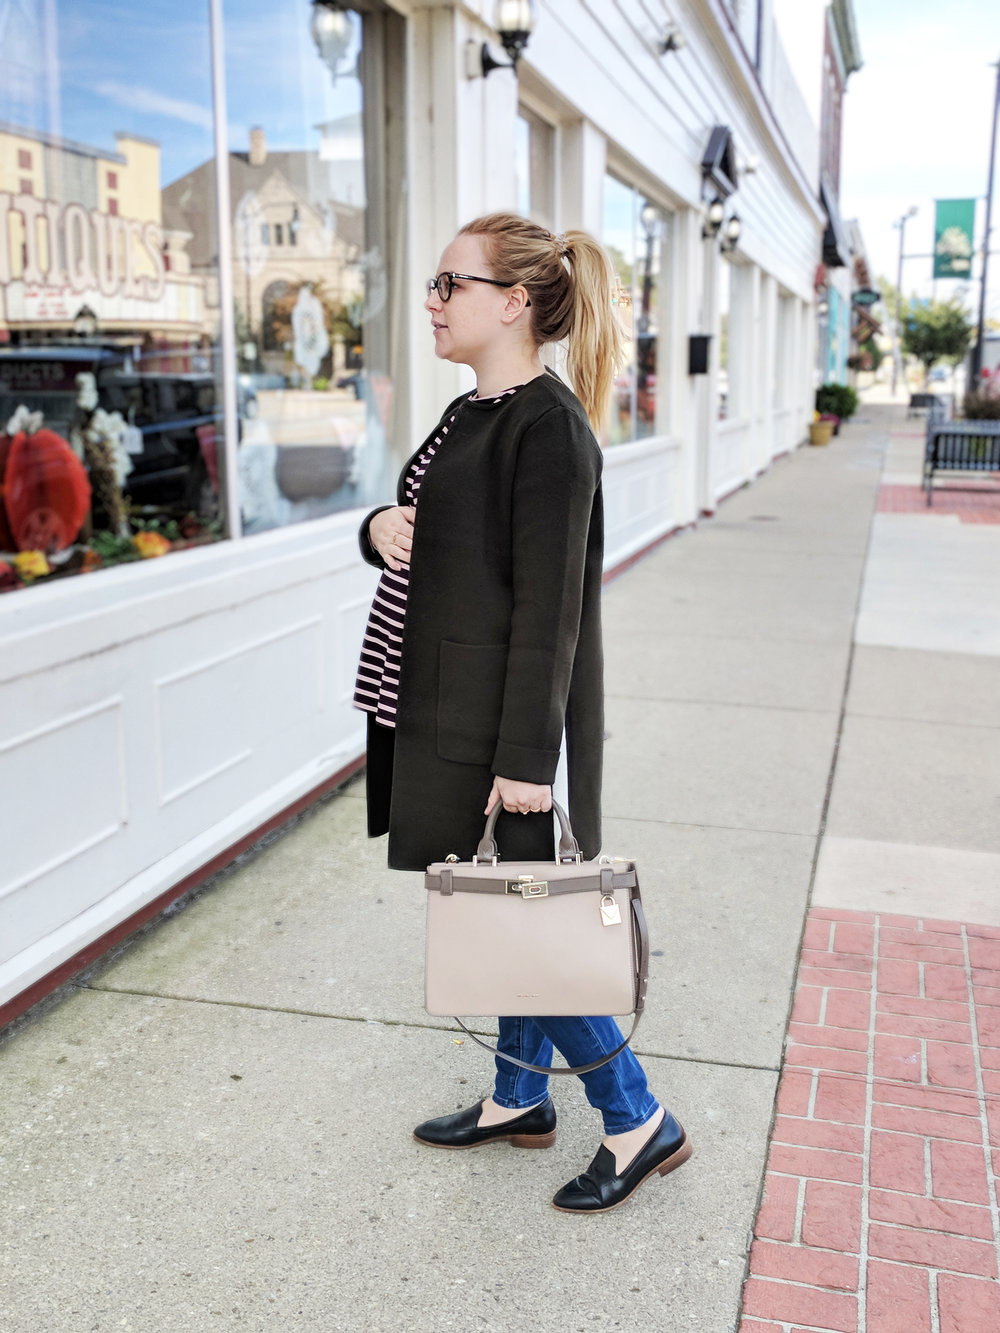 Maggie a la Mode - Anthropologie Evergreen Sweater Coat, HATCH The Long Sleeve Tee, Madewell Maternity Jeans Danny Wash, Madewell Frances Loafer, Michael Kors Tatiana Medium Two Tone Leather Satchel